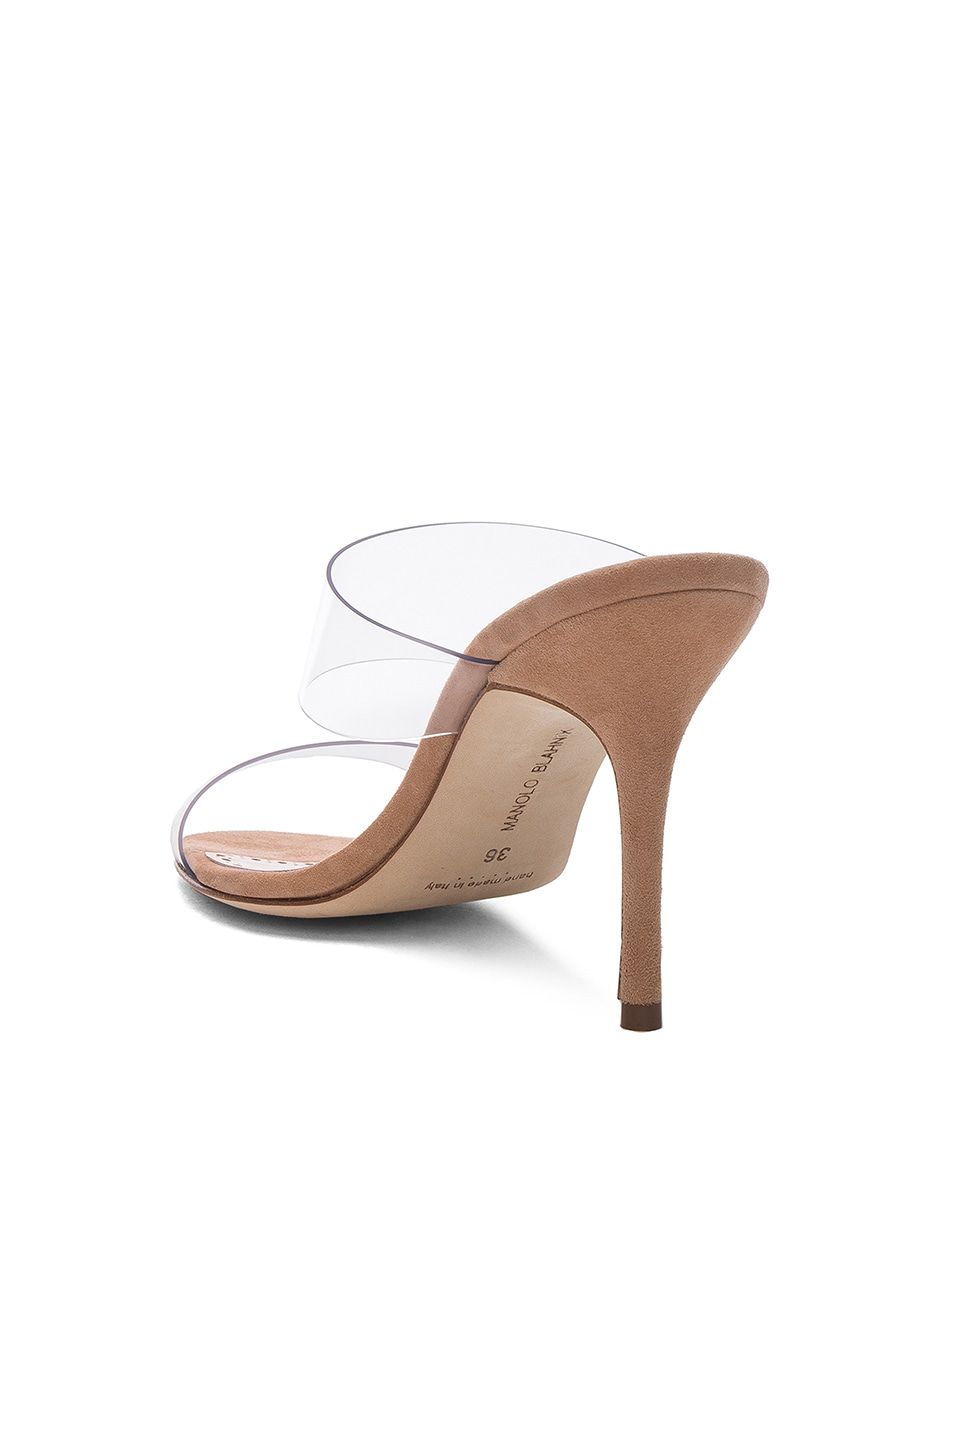 Image 3 of Manolo Blahnik PVC Scolto Sandals in Nude Suede